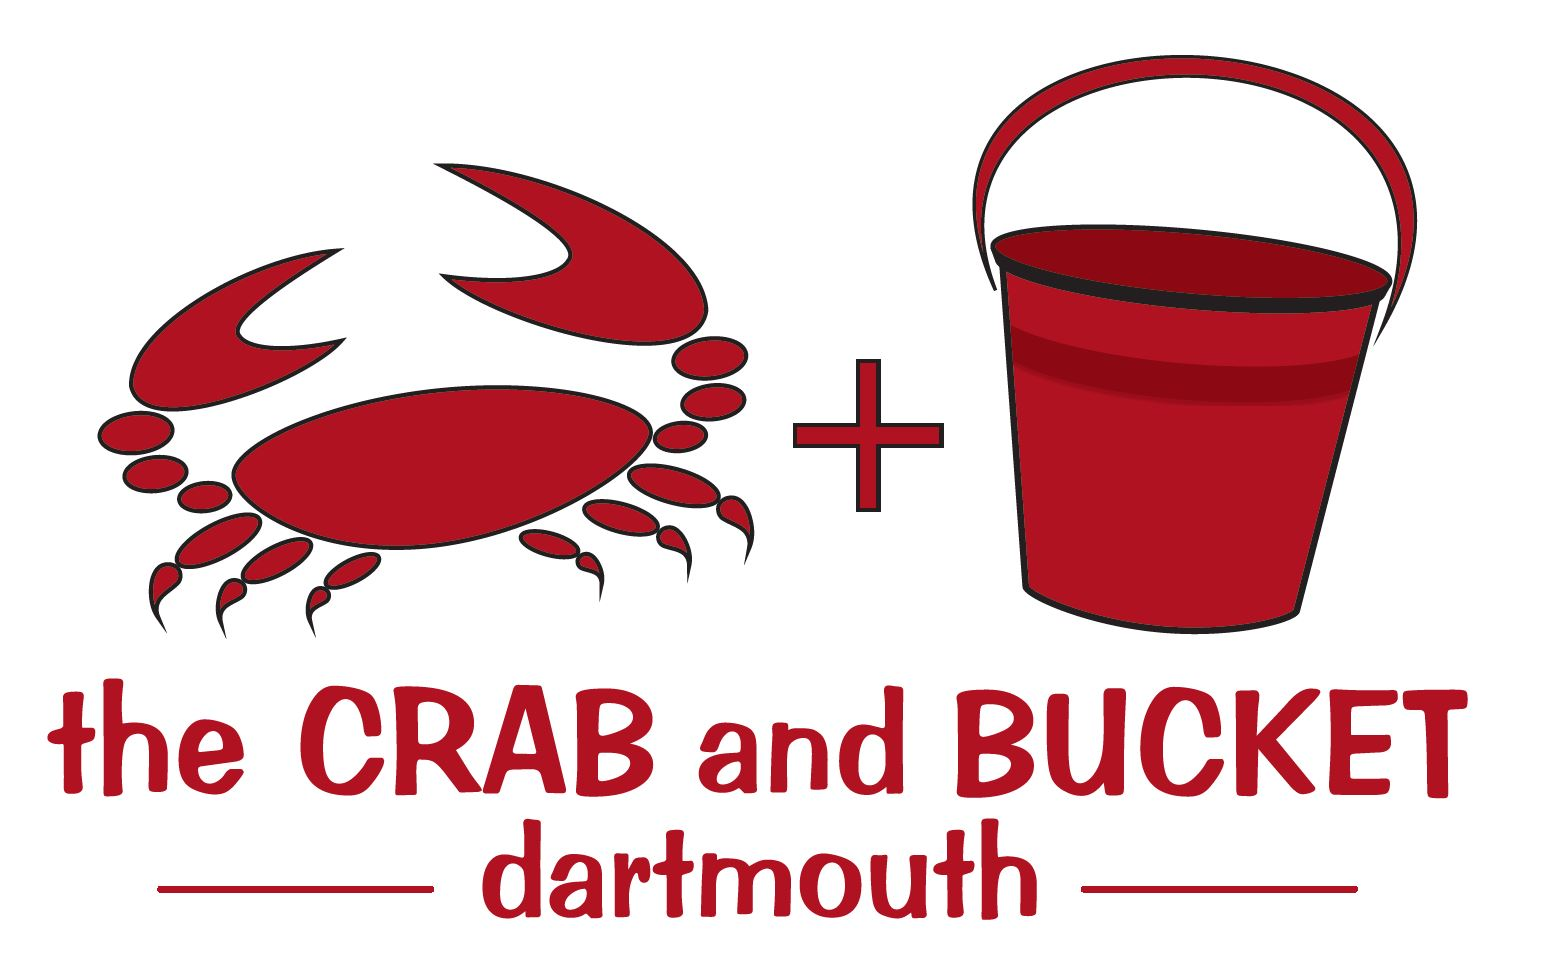 The Crab and Bucket